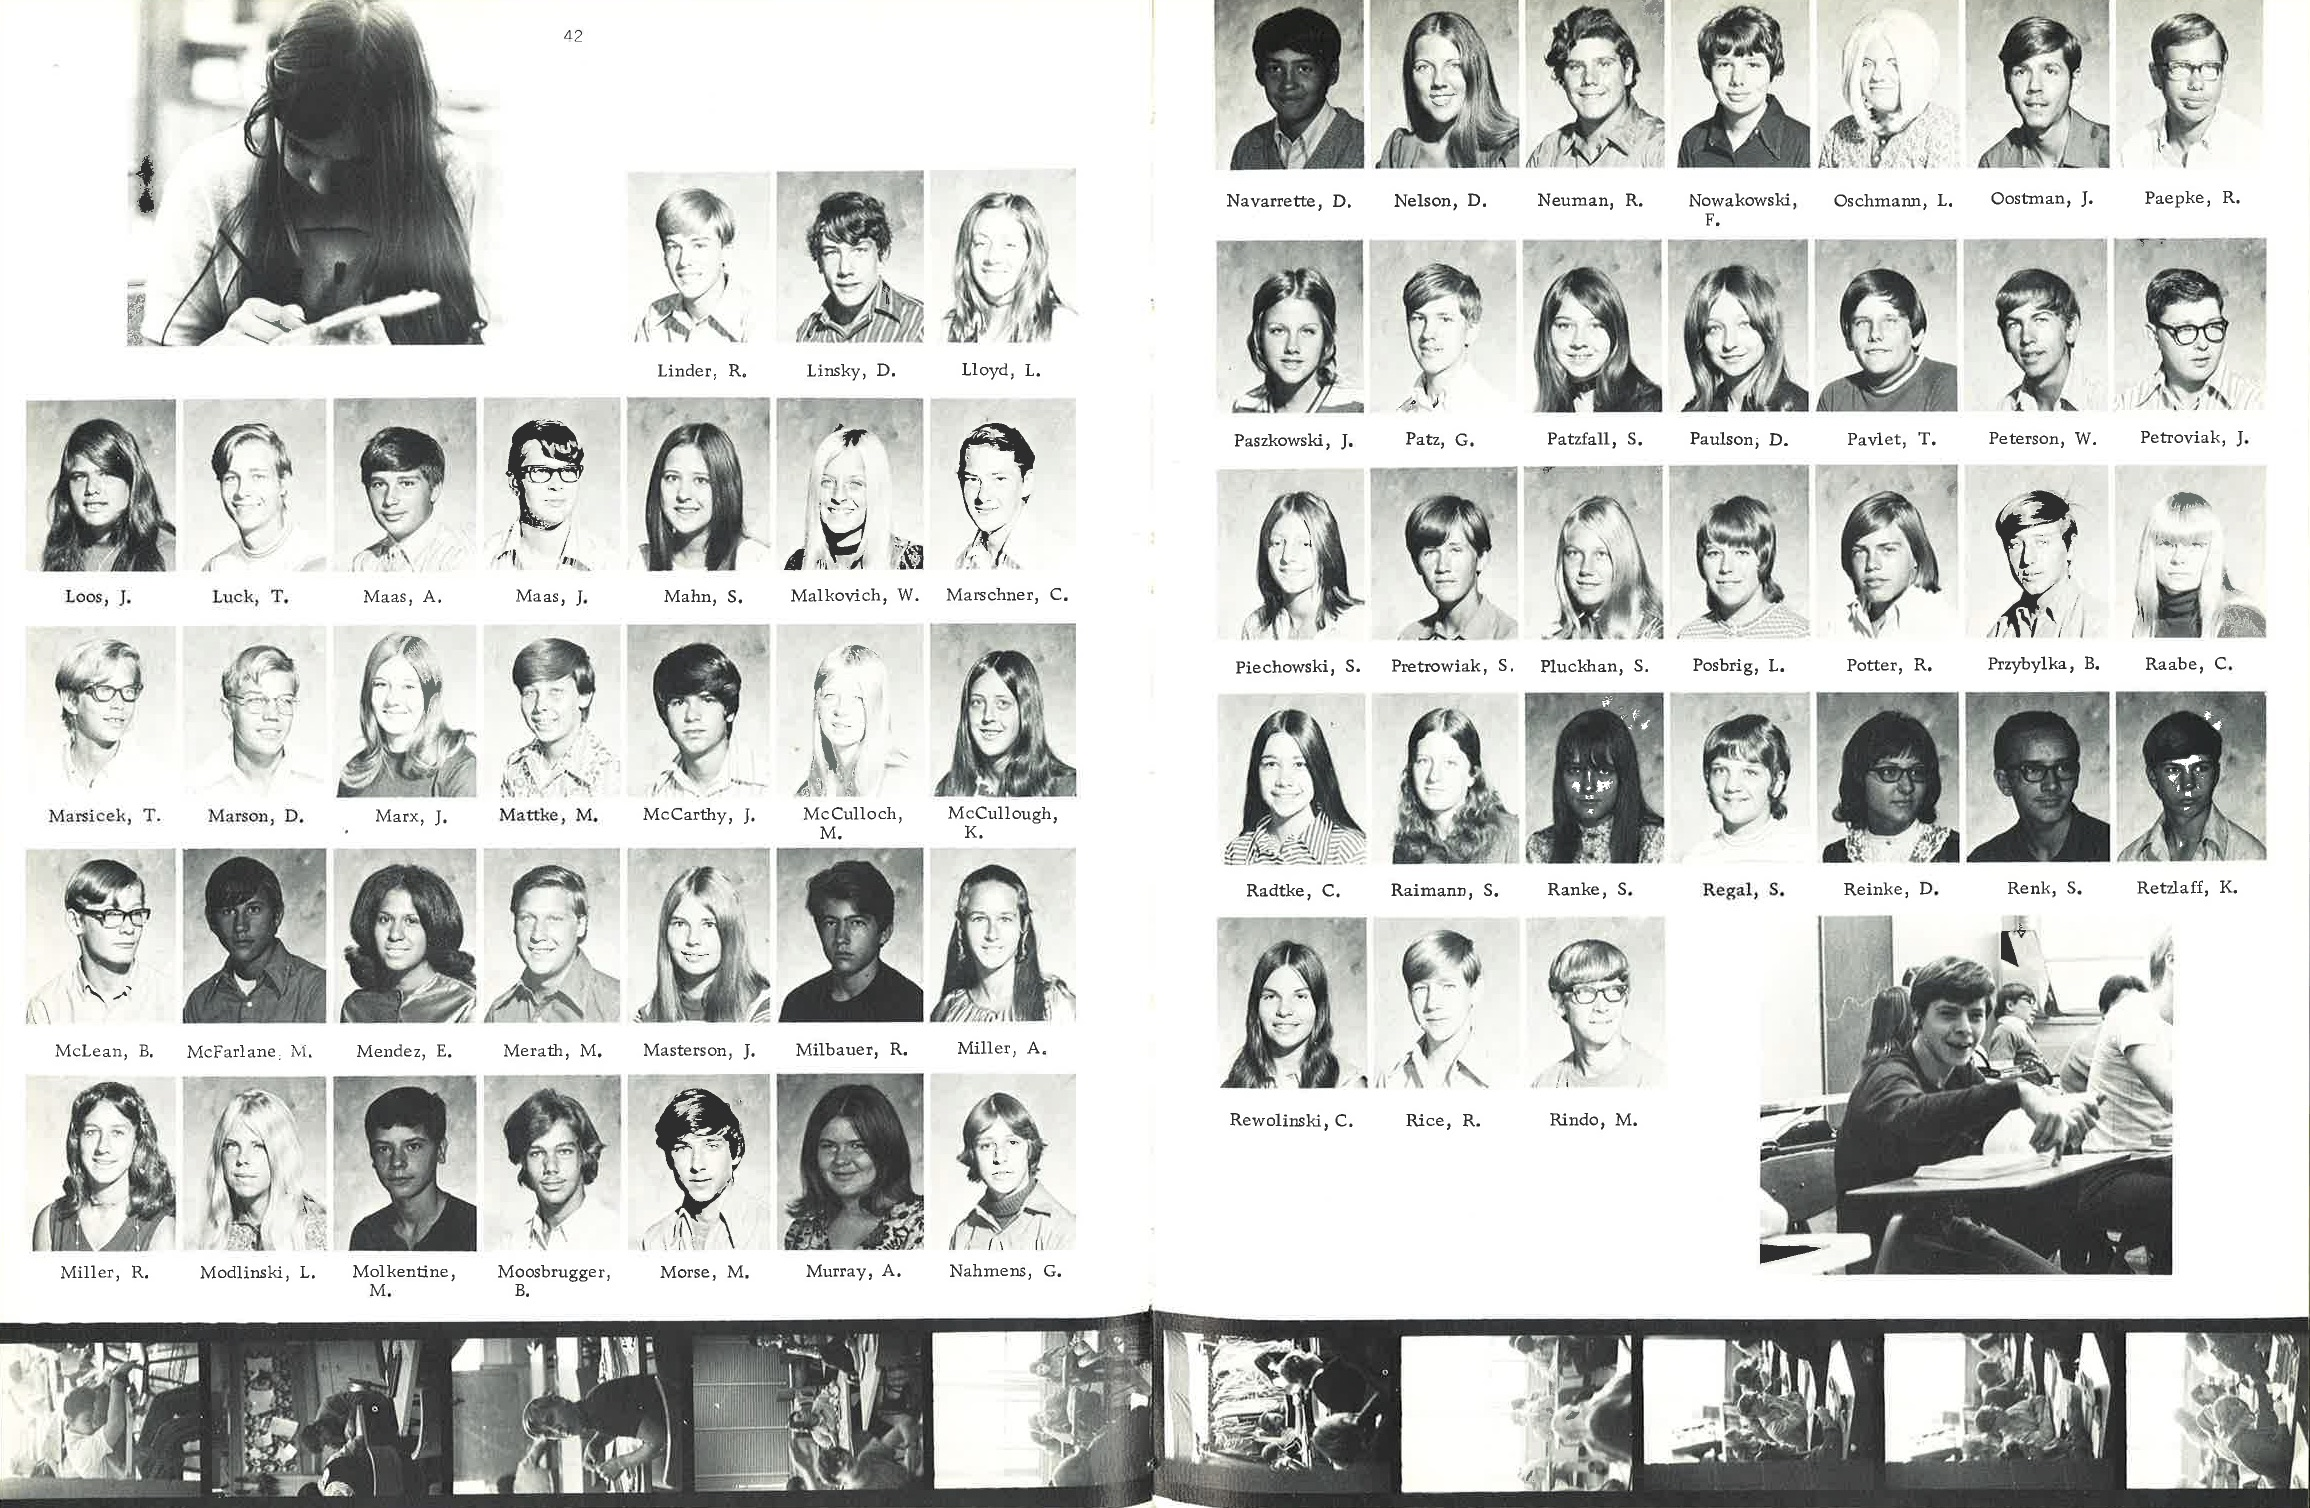 1972_Yearbook_42-43.jpg